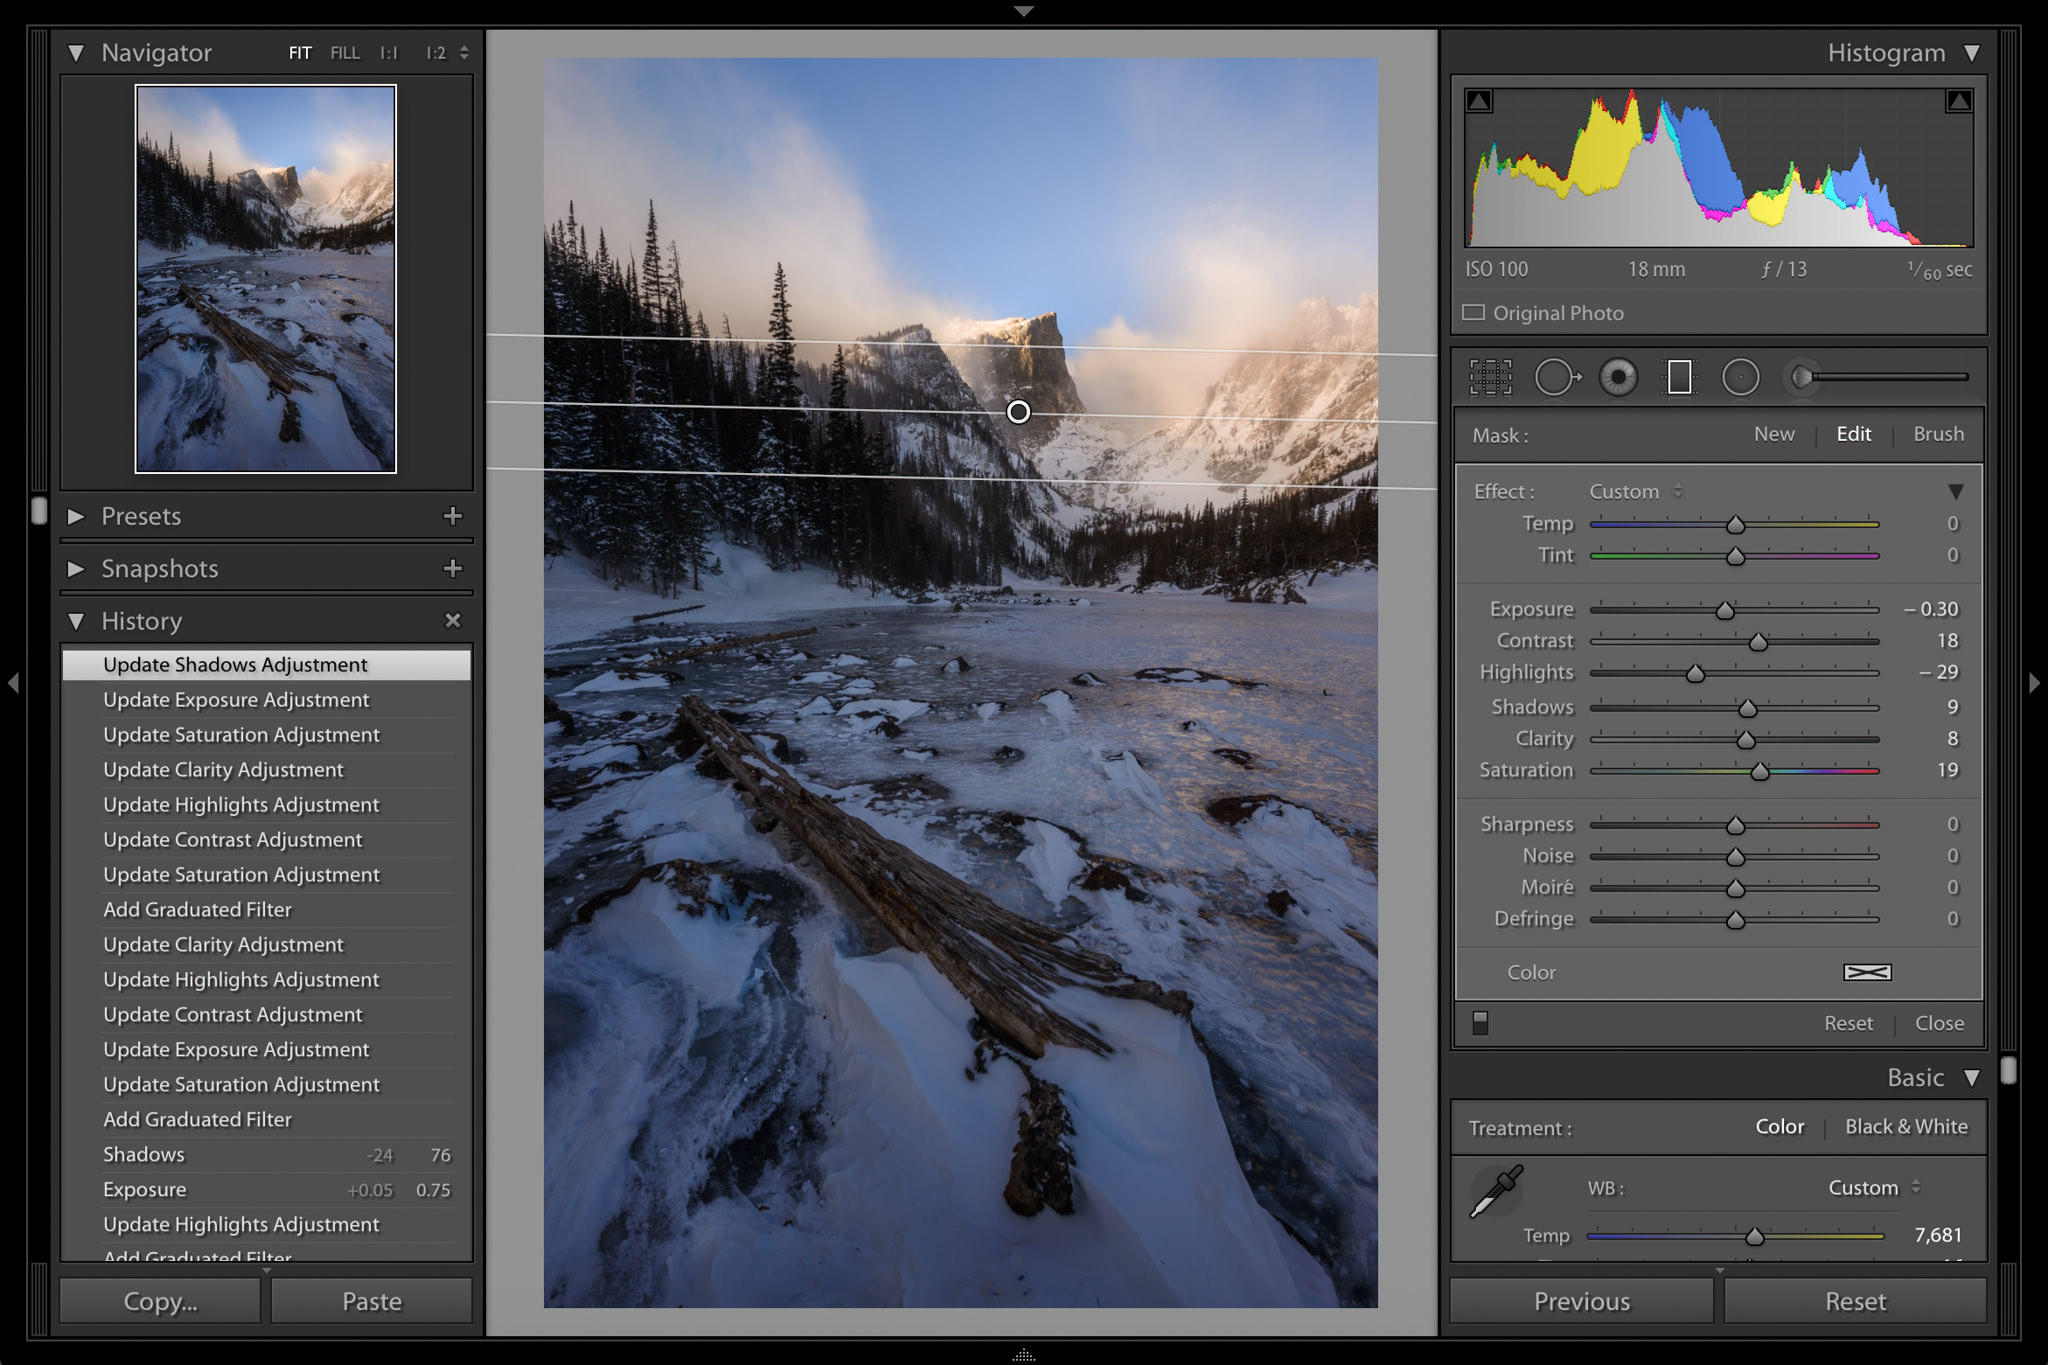 Astrophotography post processing software